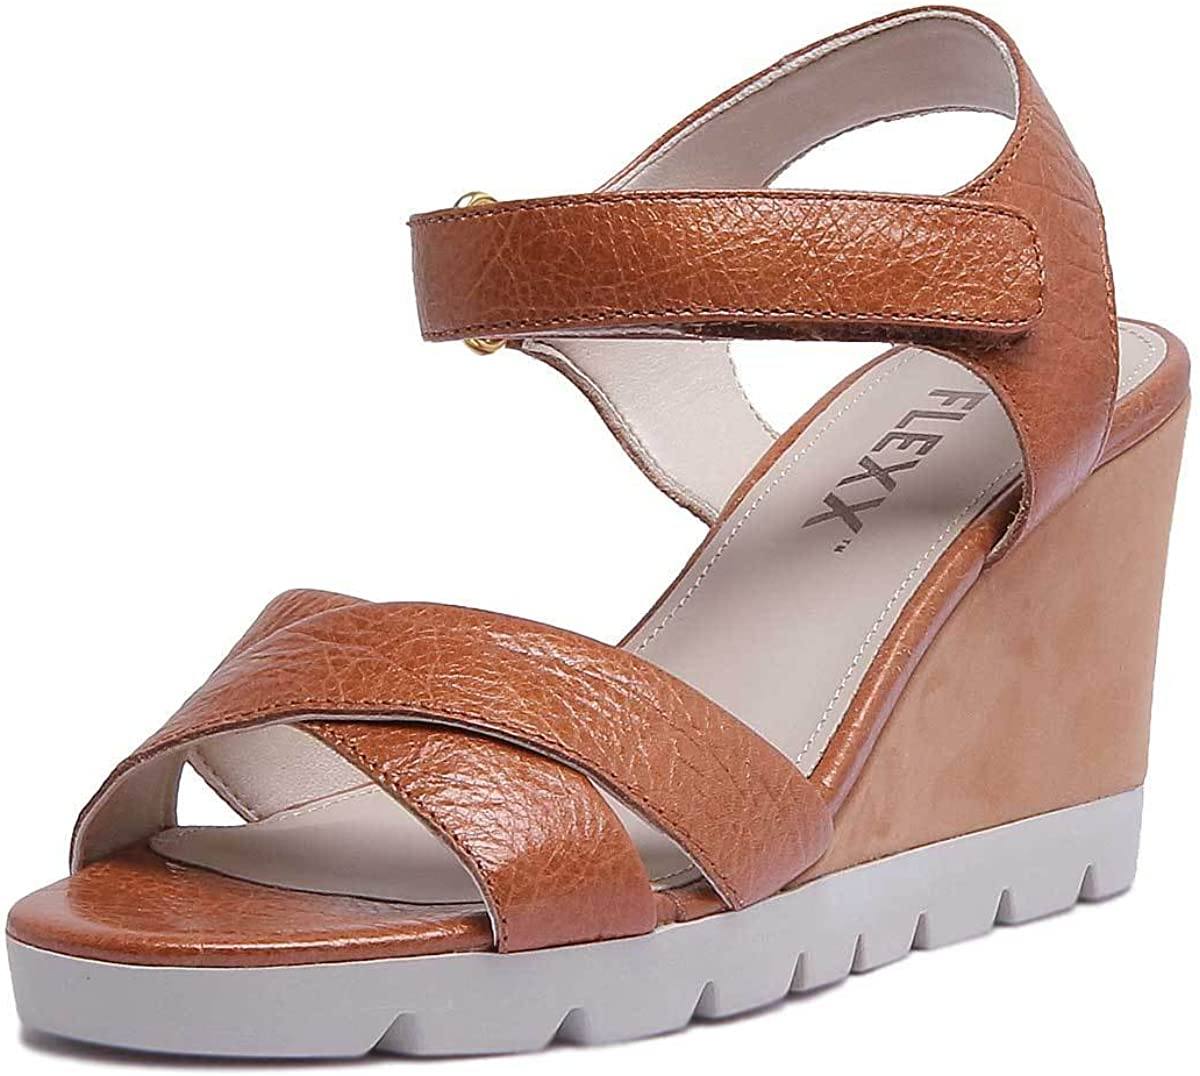 The FLEXX Lot Off Hook and Loop Ankle Strap Leather Wedge Sandal